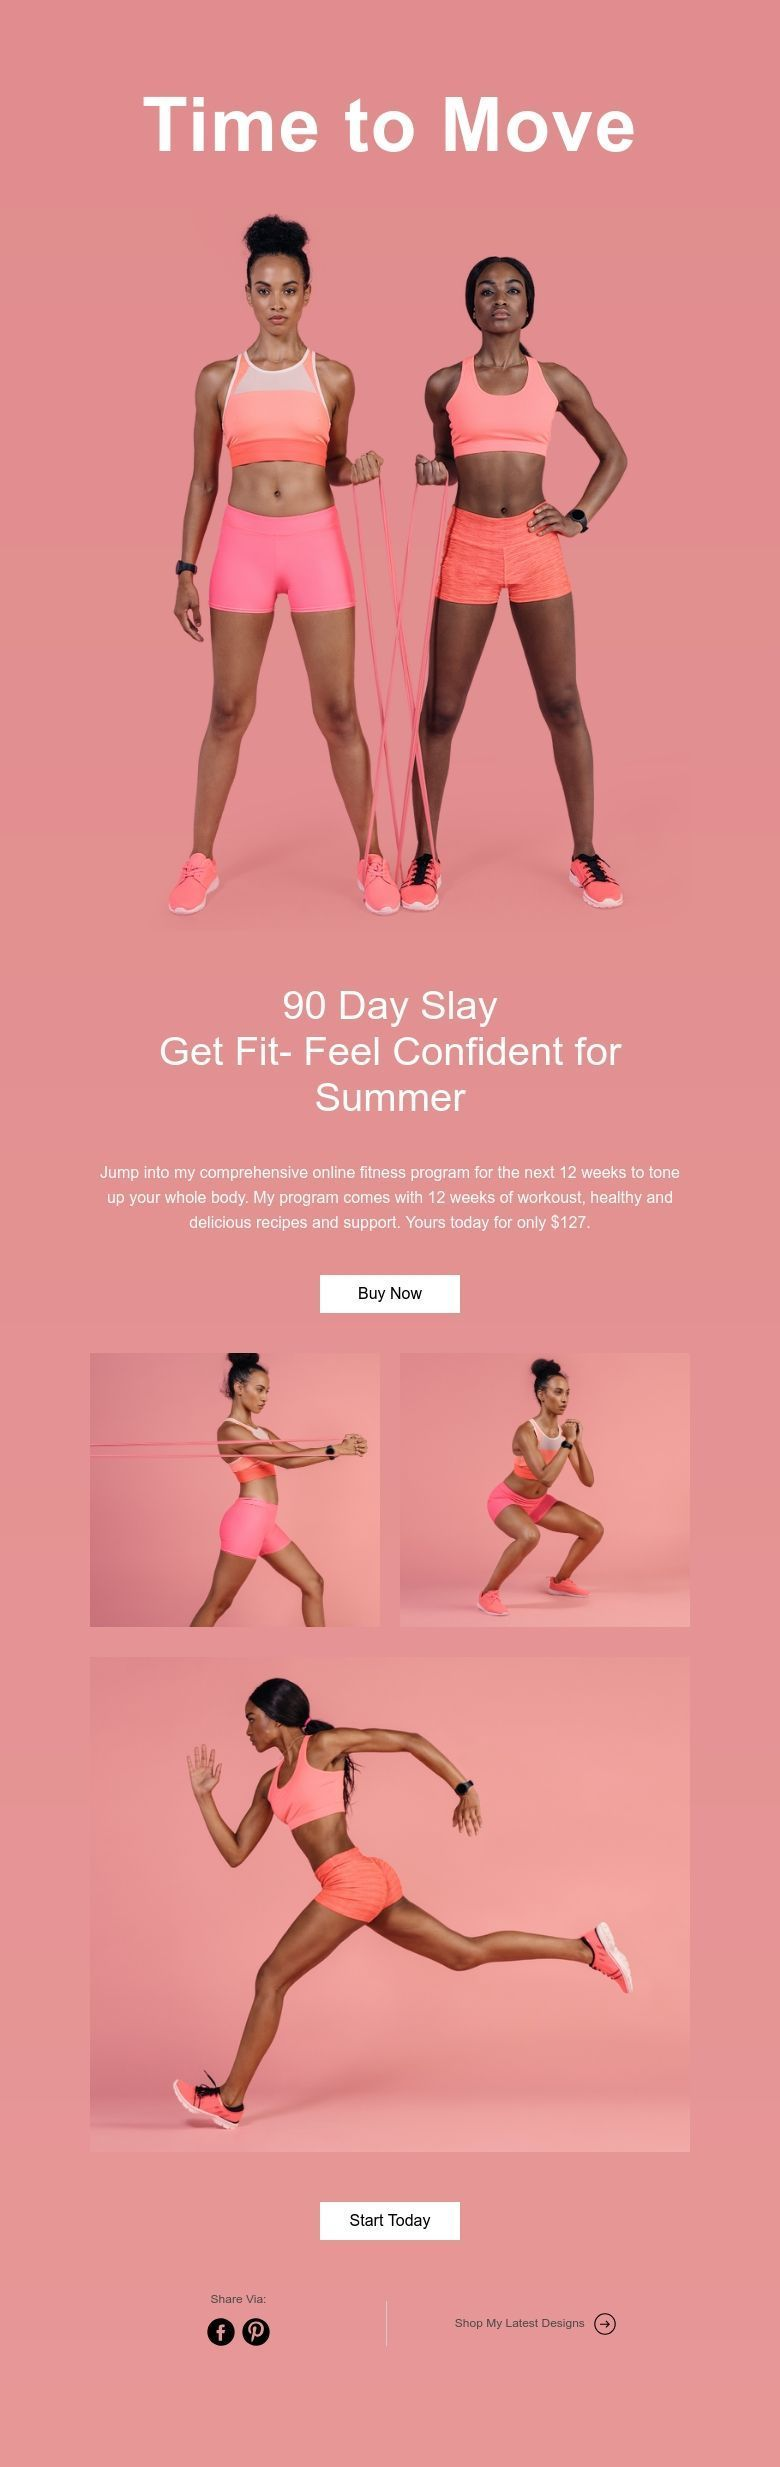 Get Summer Ready With This 90 Day Fitness Program For Women Fitness Workoutsforwomen Weightlossplans Workout Programs For Women Workout Programs Get Fit